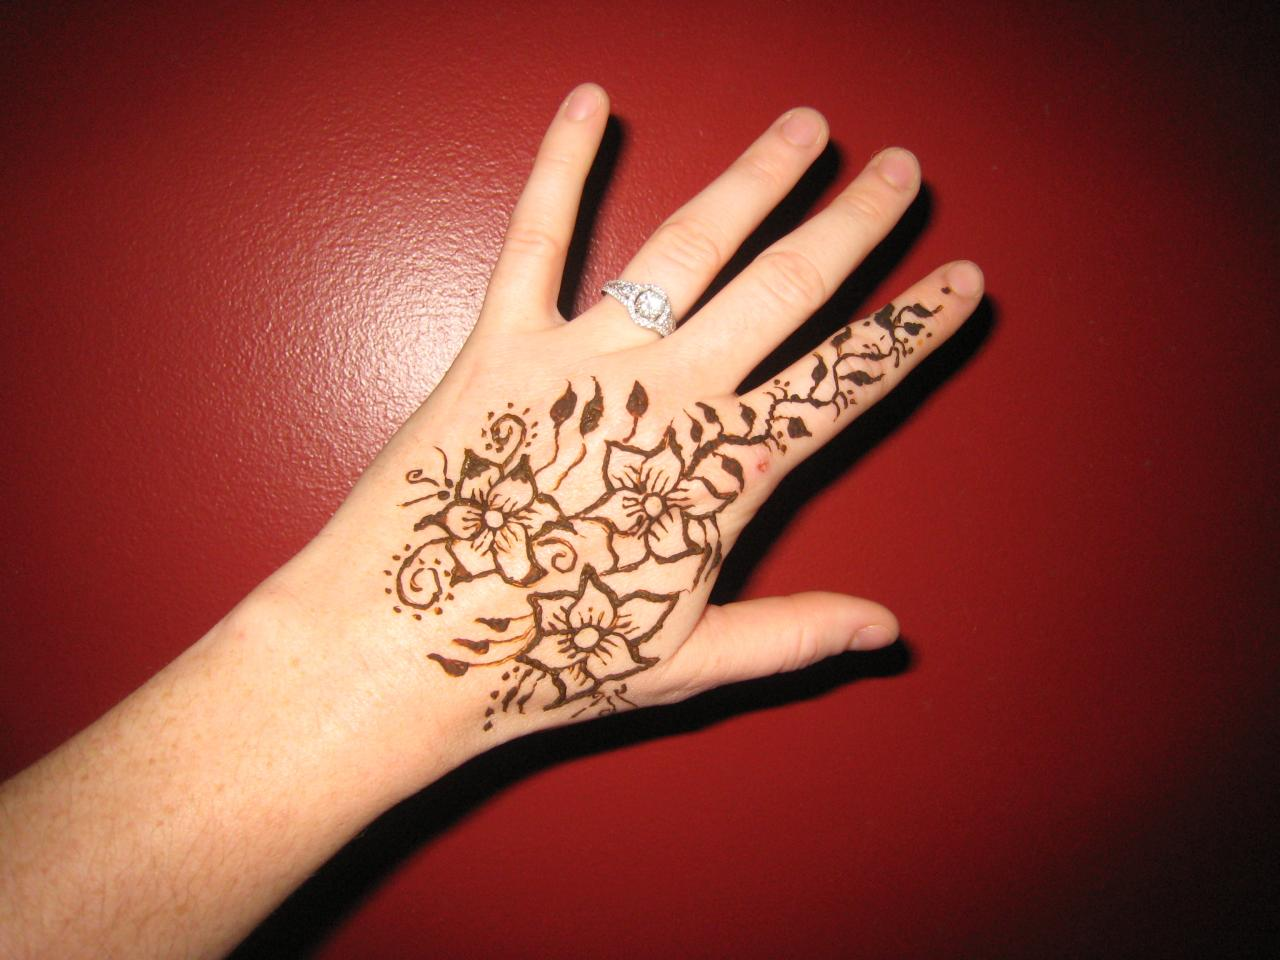 Henna Tattoo How To : Designs by jenn henna tattoos